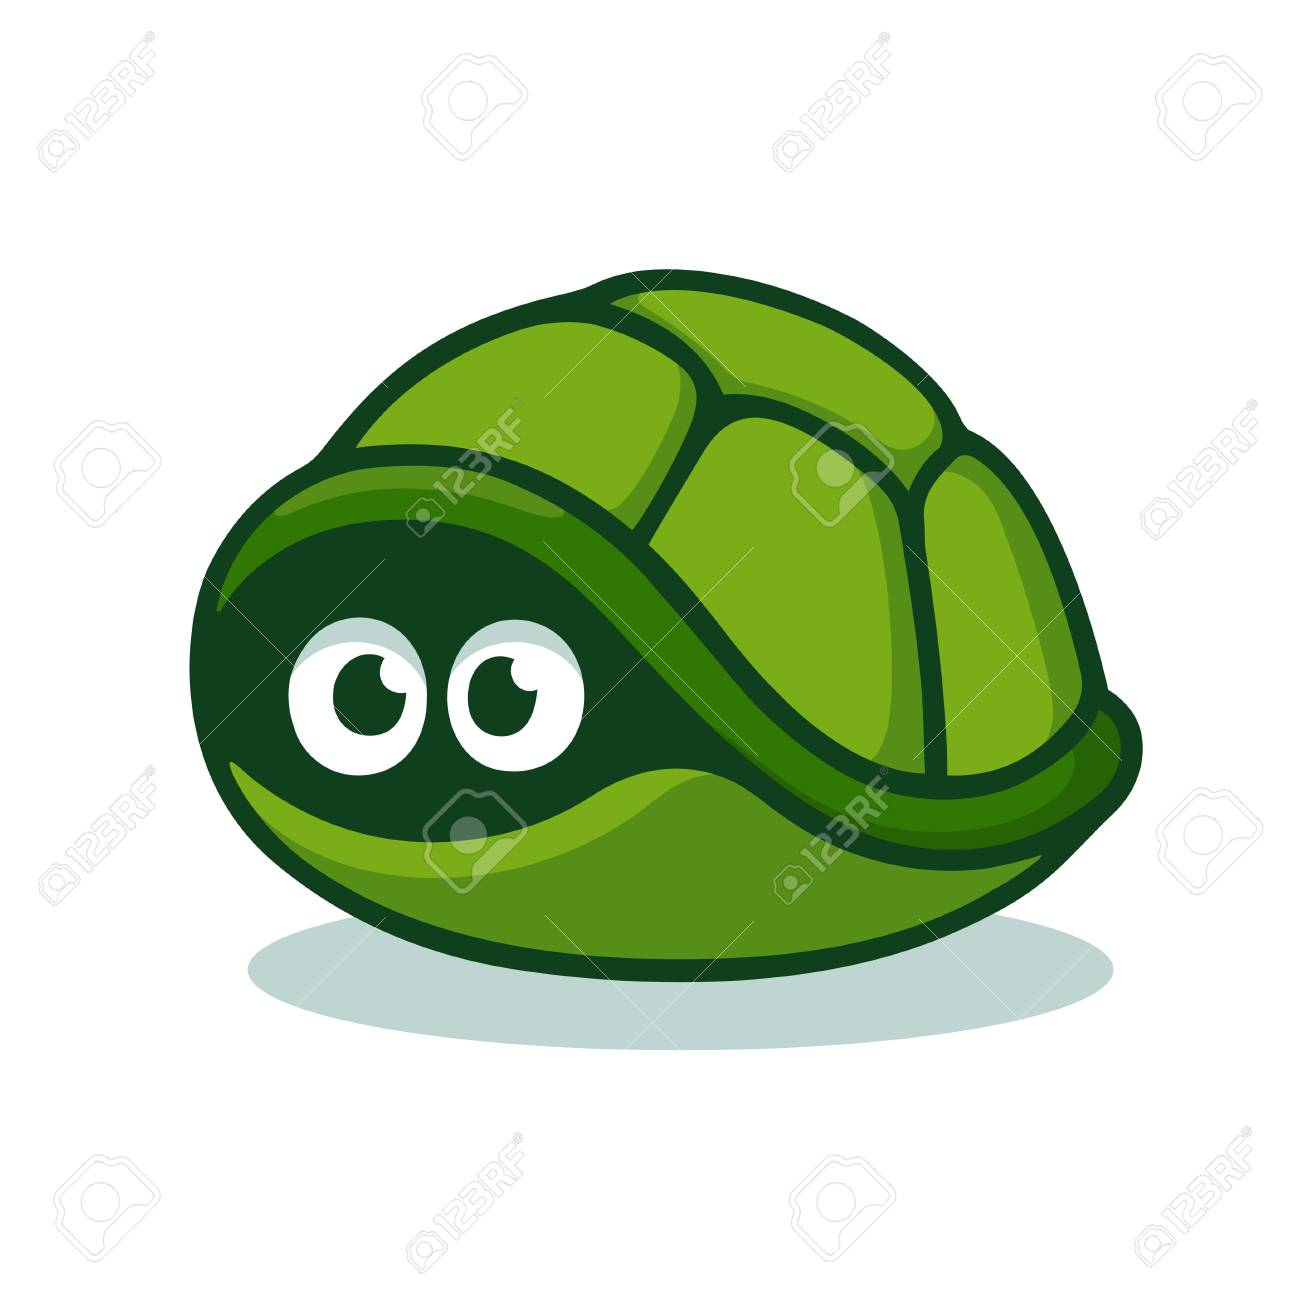 Cartoon Turtle Afraid To Come Out Of Its Shell Cute Hiding